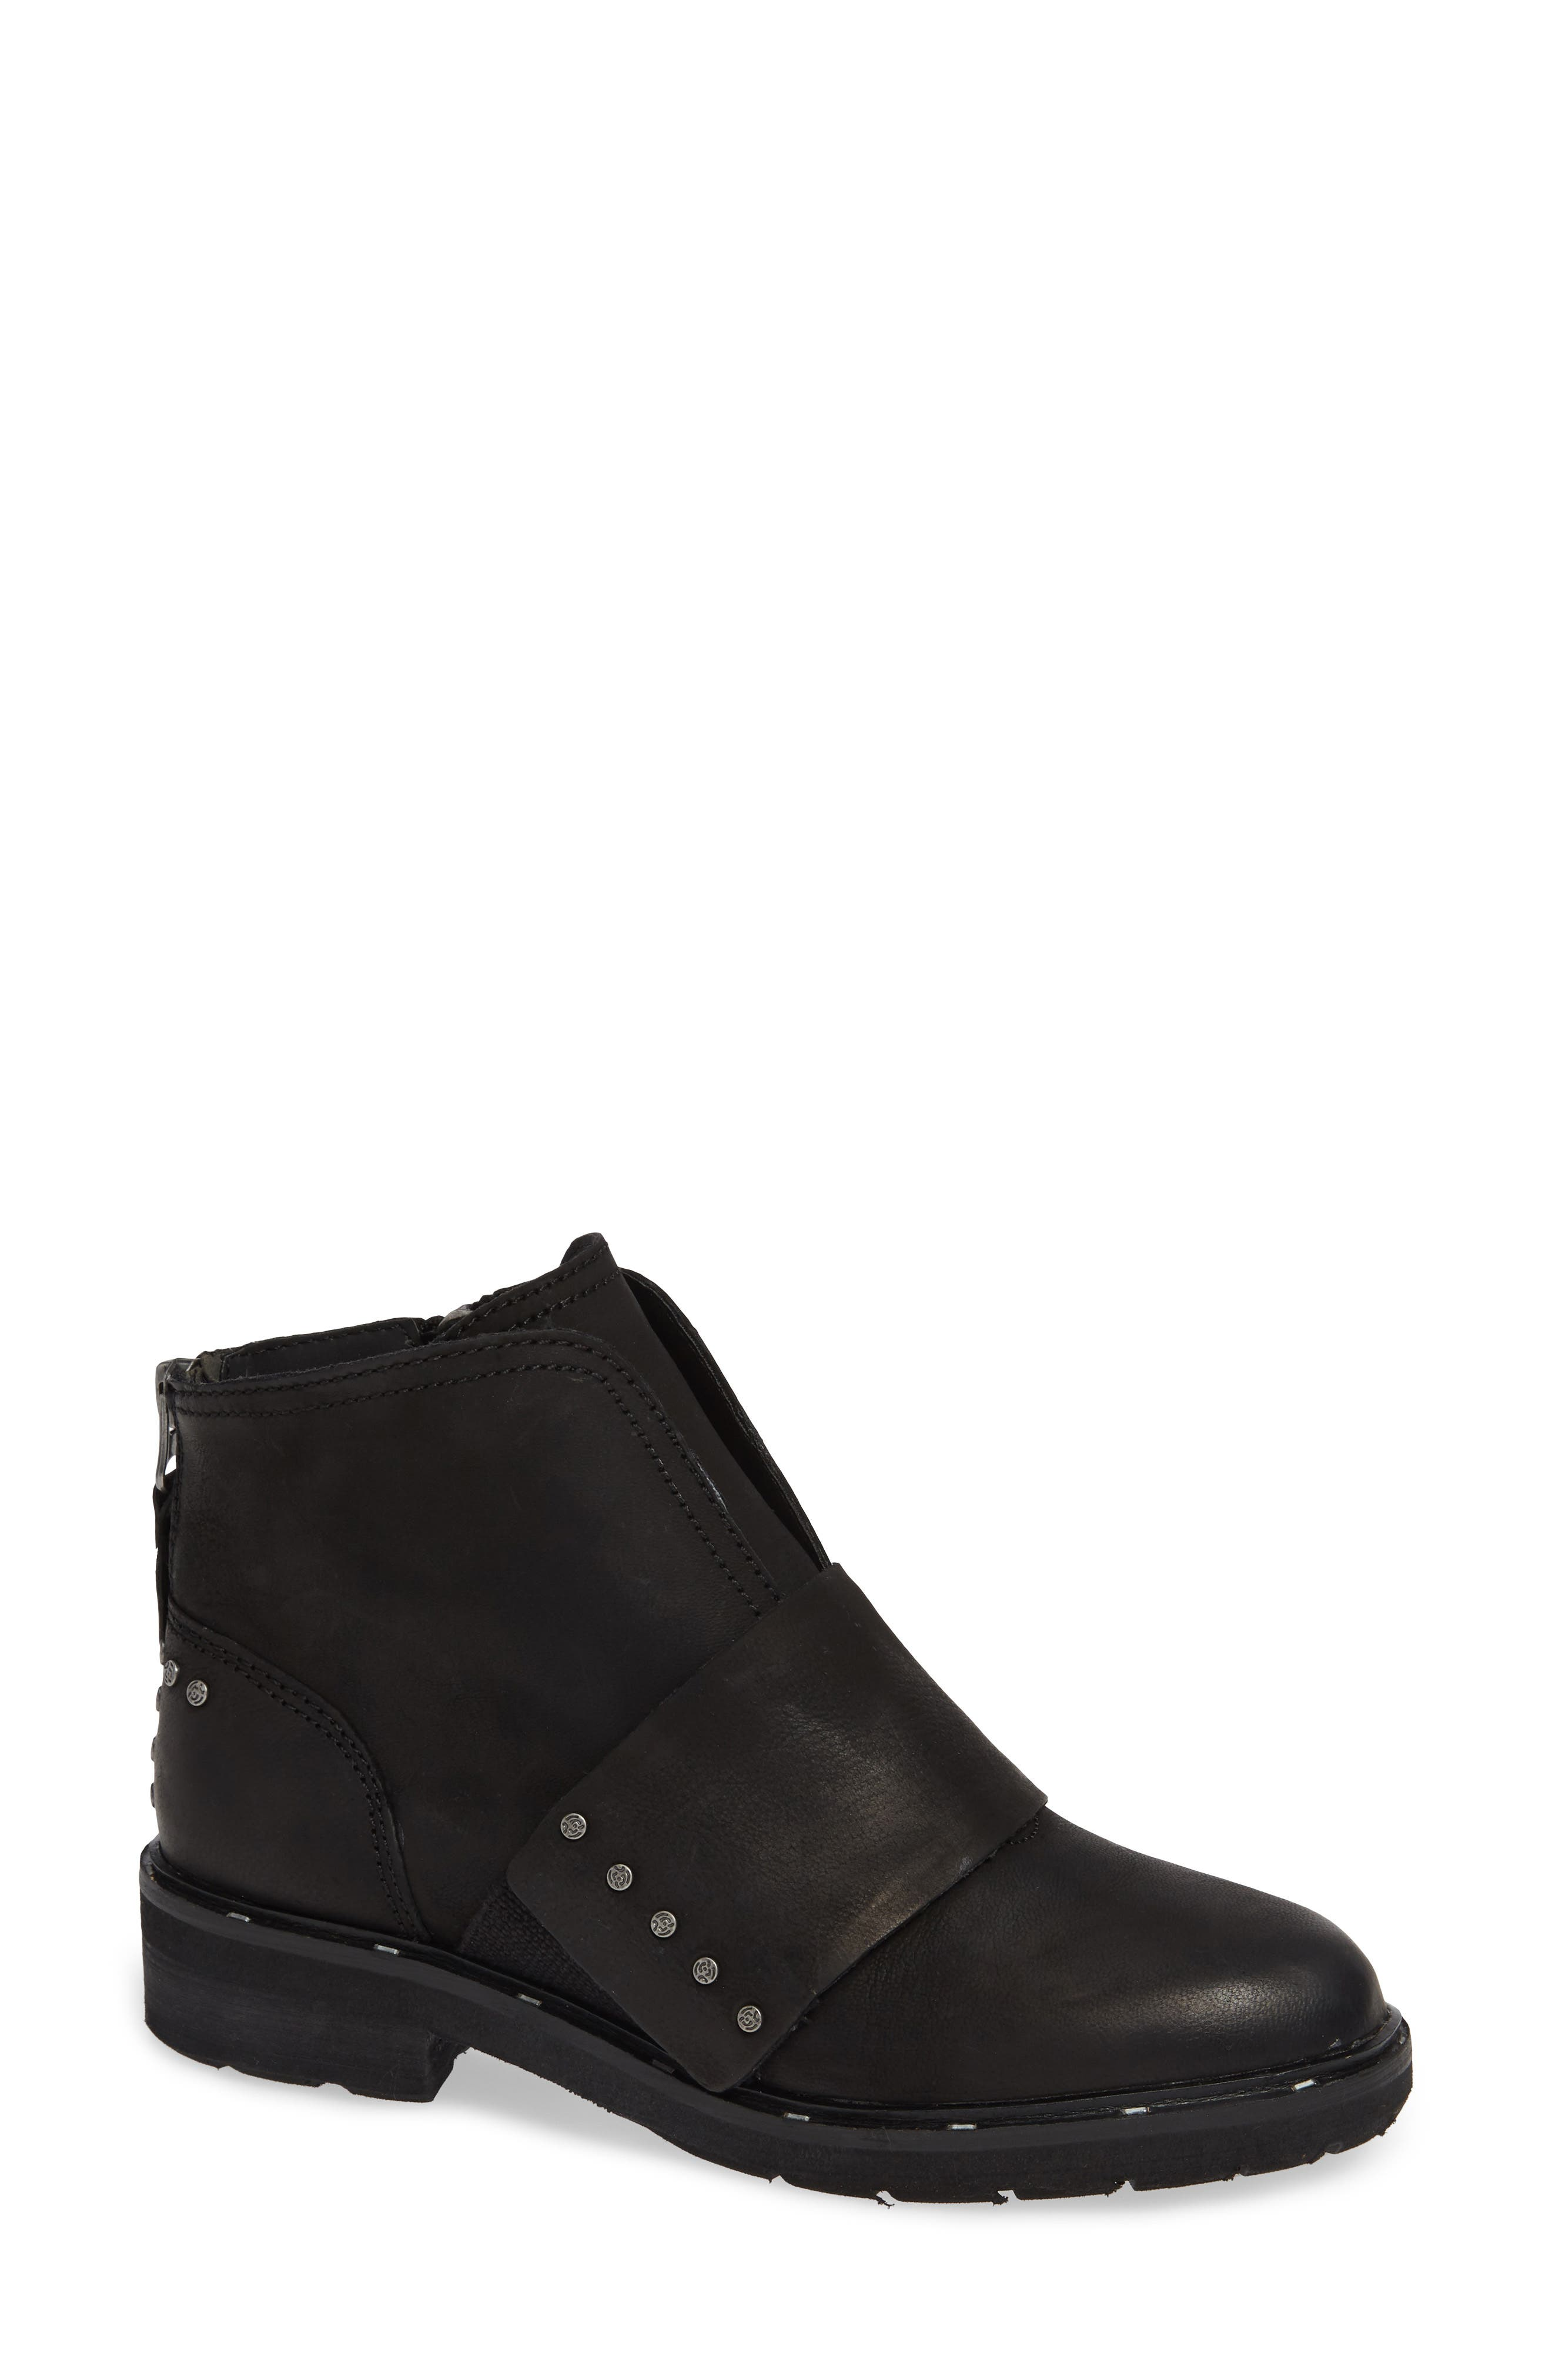 Frontage Bootie,                             Main thumbnail 1, color,                             BLACK LEATHER